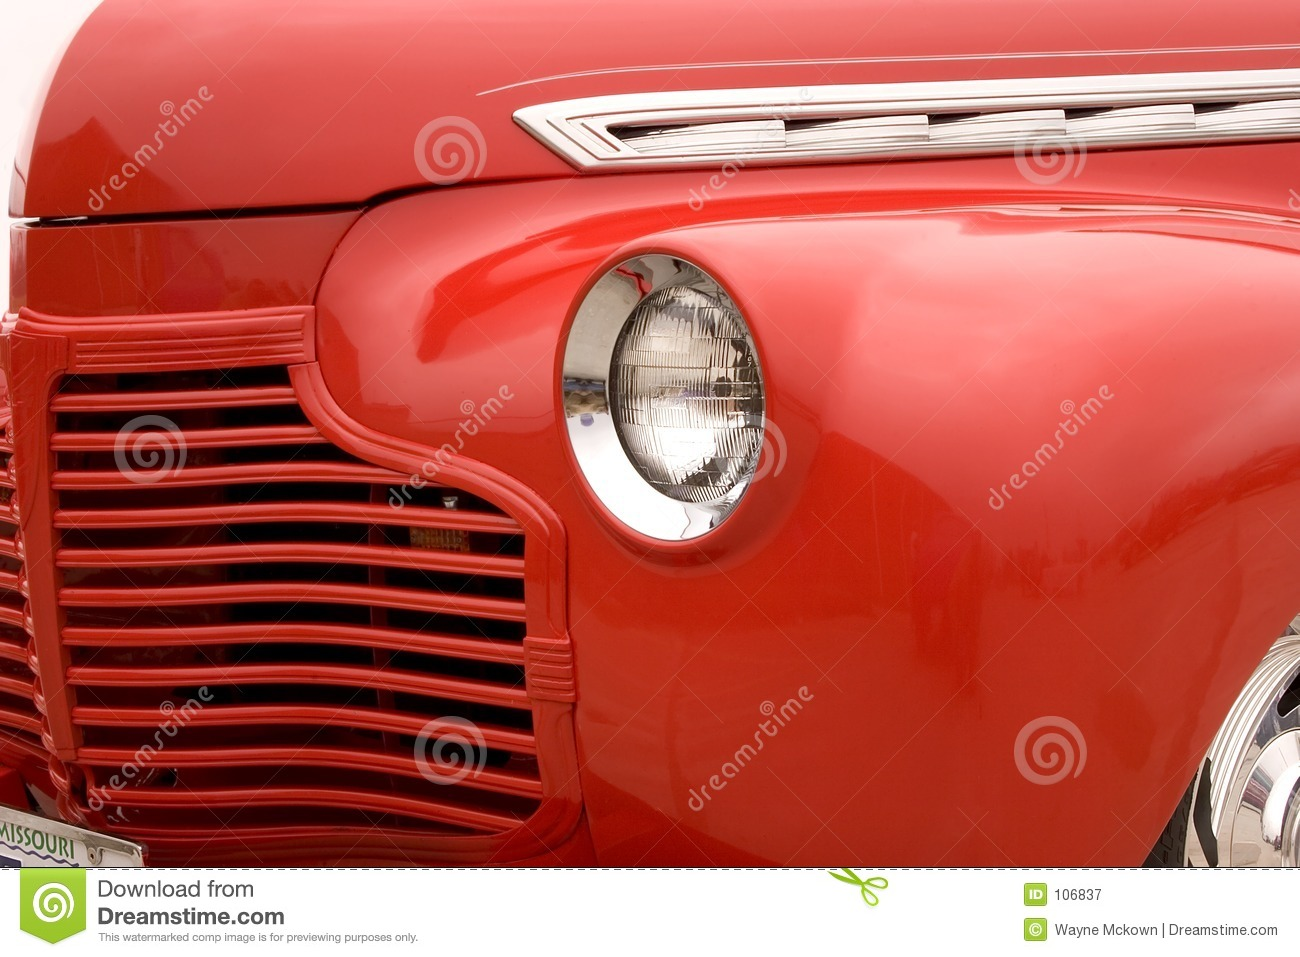 Download 1940's Chevy street rod stock image. Image of american - 106837